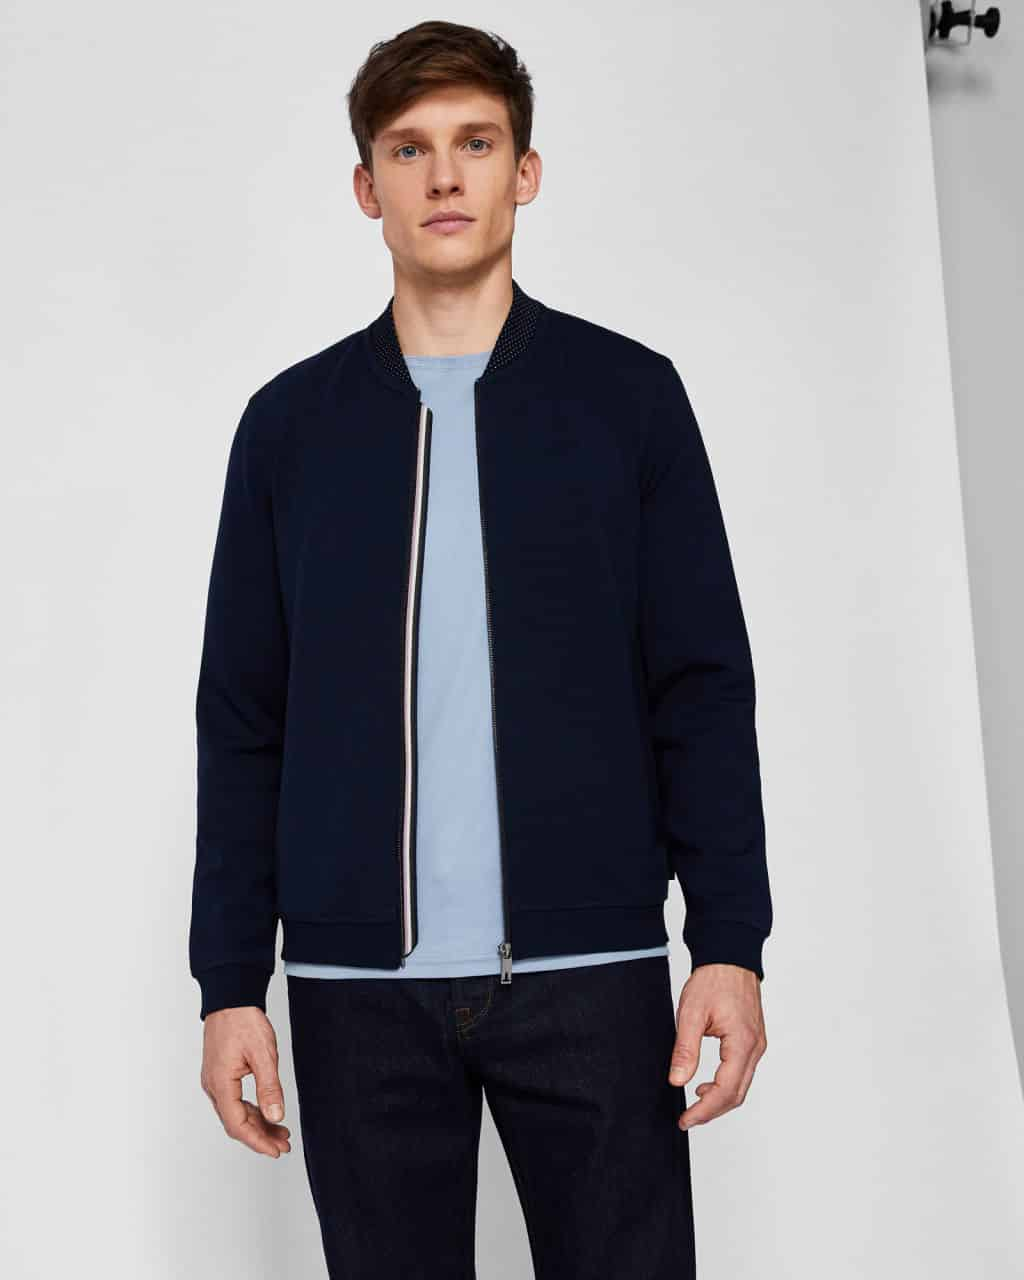 5b638b70a8aee8 TED BAKER LONDON WOLF NAVY BONDED JERSEY BOMBER JACKET